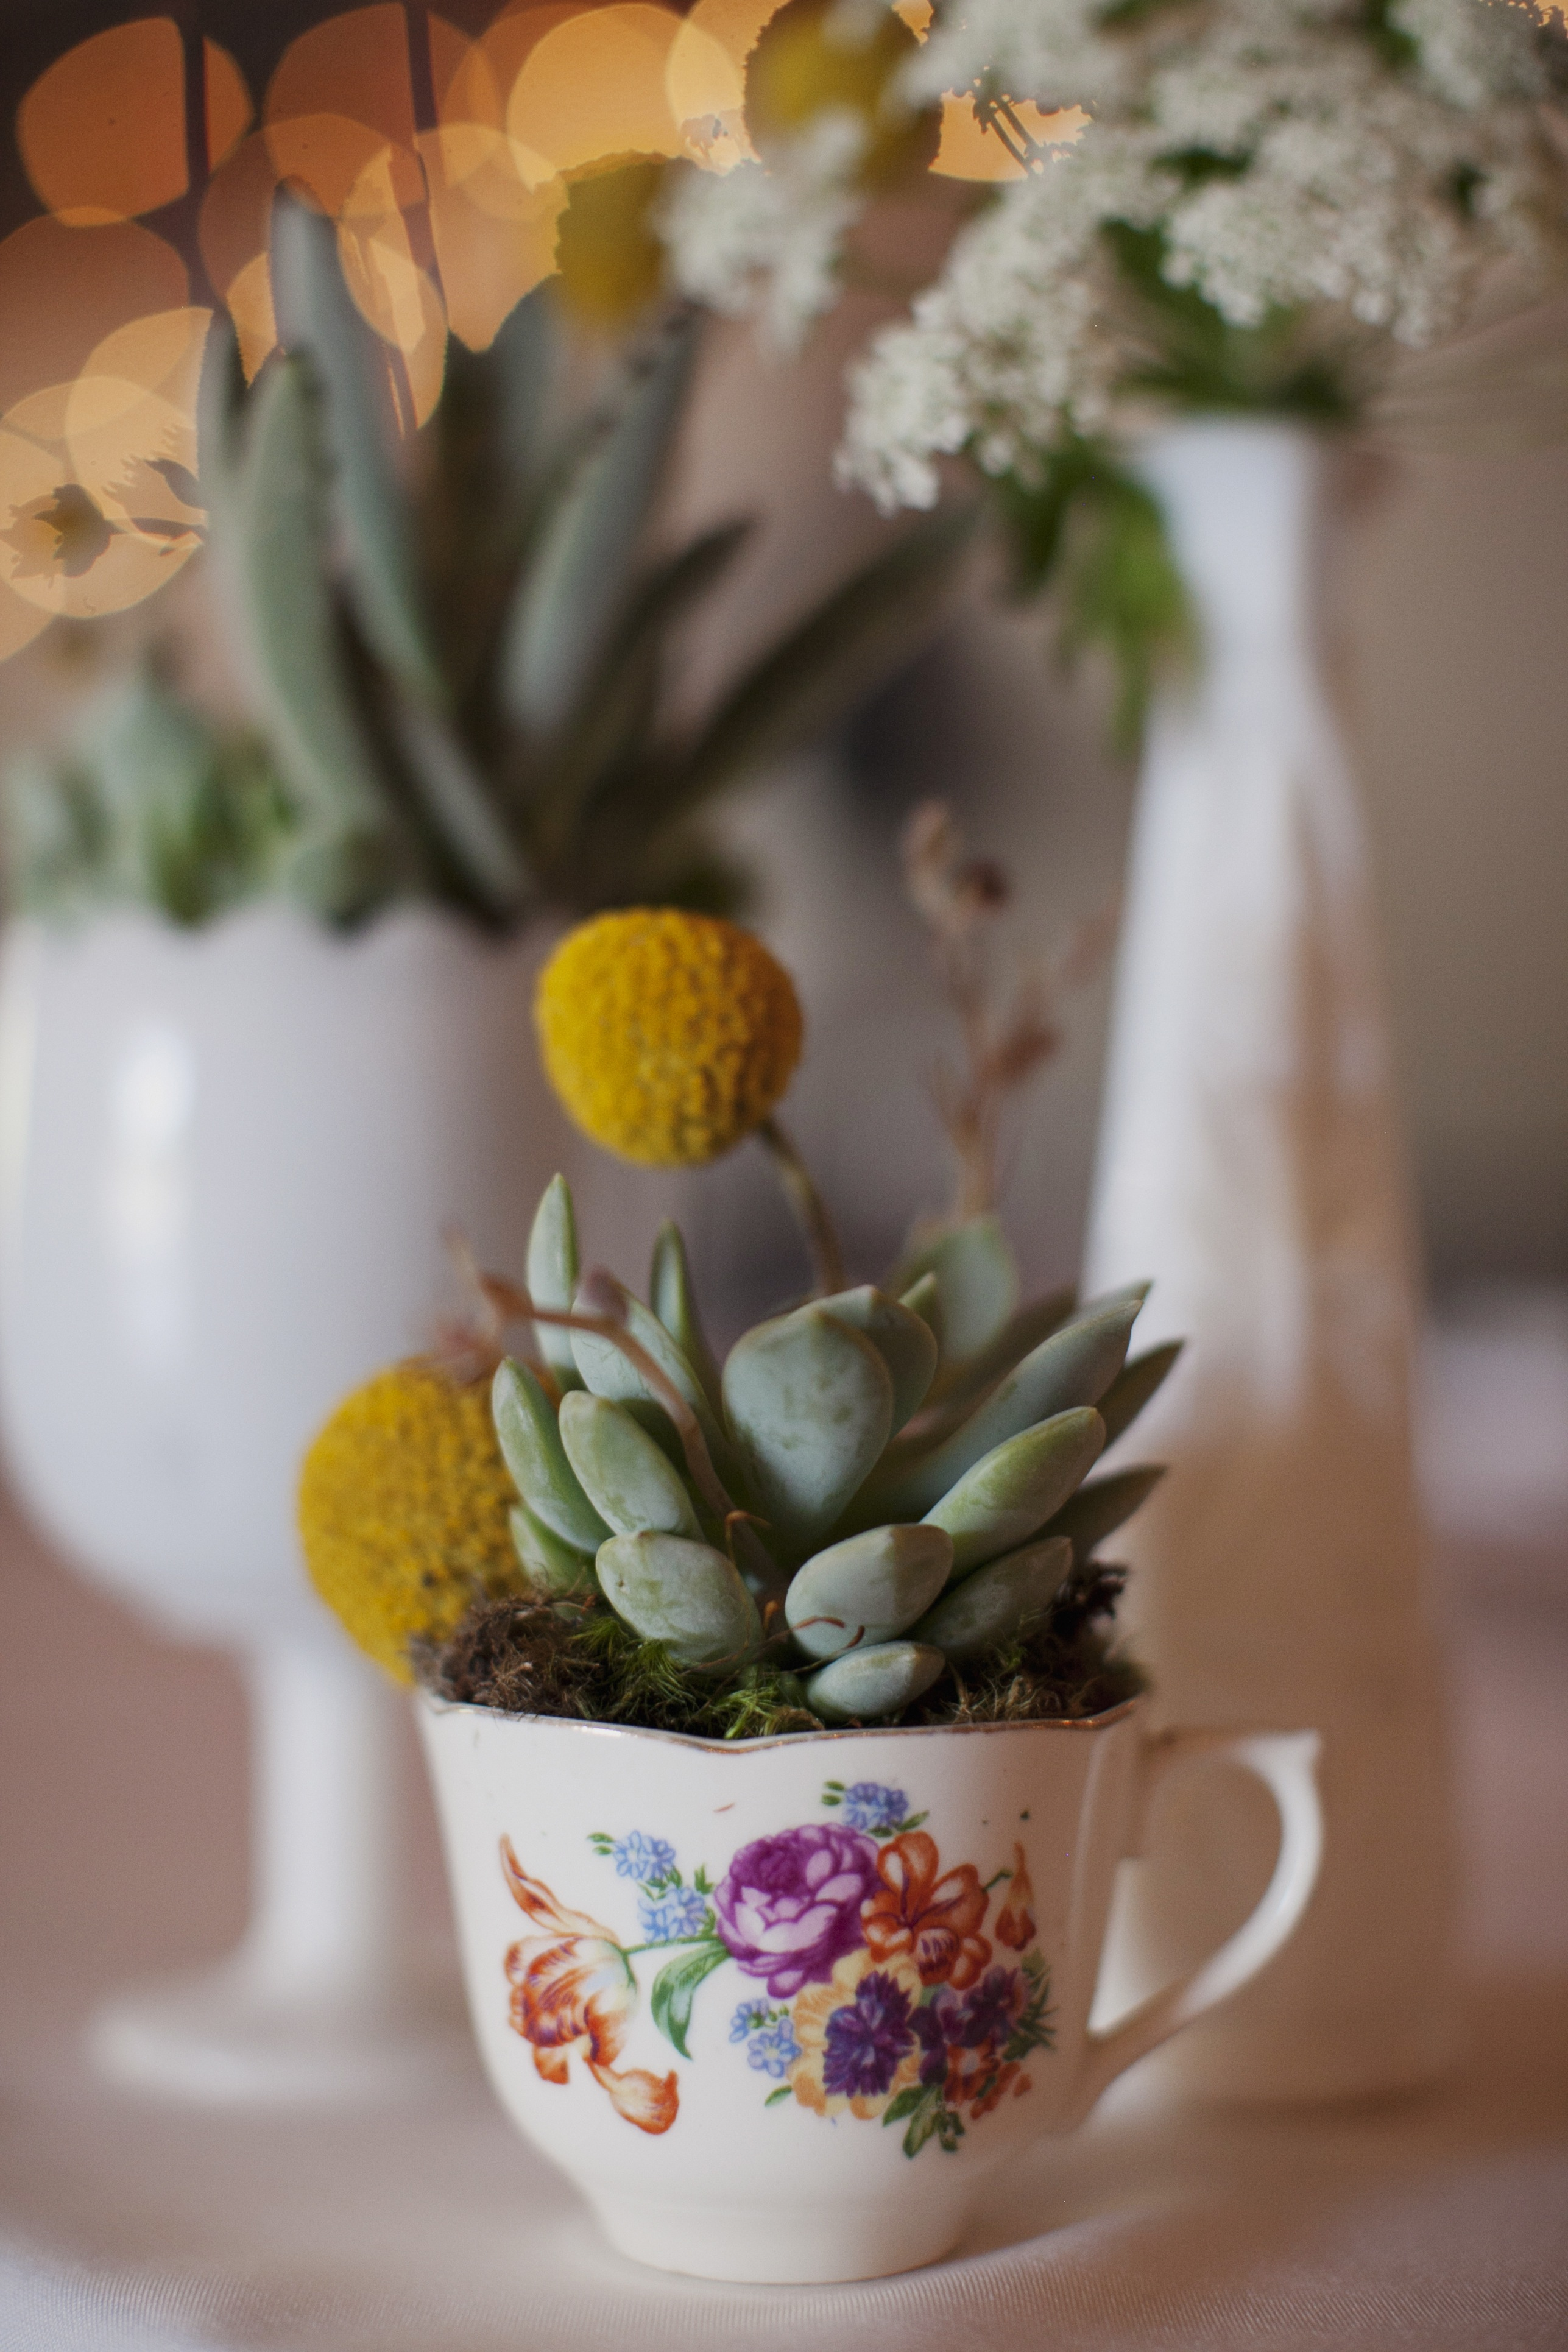 Flowers & Decor, Real Weddings, Wedding Style, yellow, green, Centerpieces, Rustic Real Weddings, West Coast Real Weddings, Eco-Friendly Real Weddings, Eco-Friendly Weddings, Rustic Weddings, Eco-Friendly Wedding Flowers & Decor, Vintage Wedding Flowers & Decor, Succulents, Billy balls, teacups